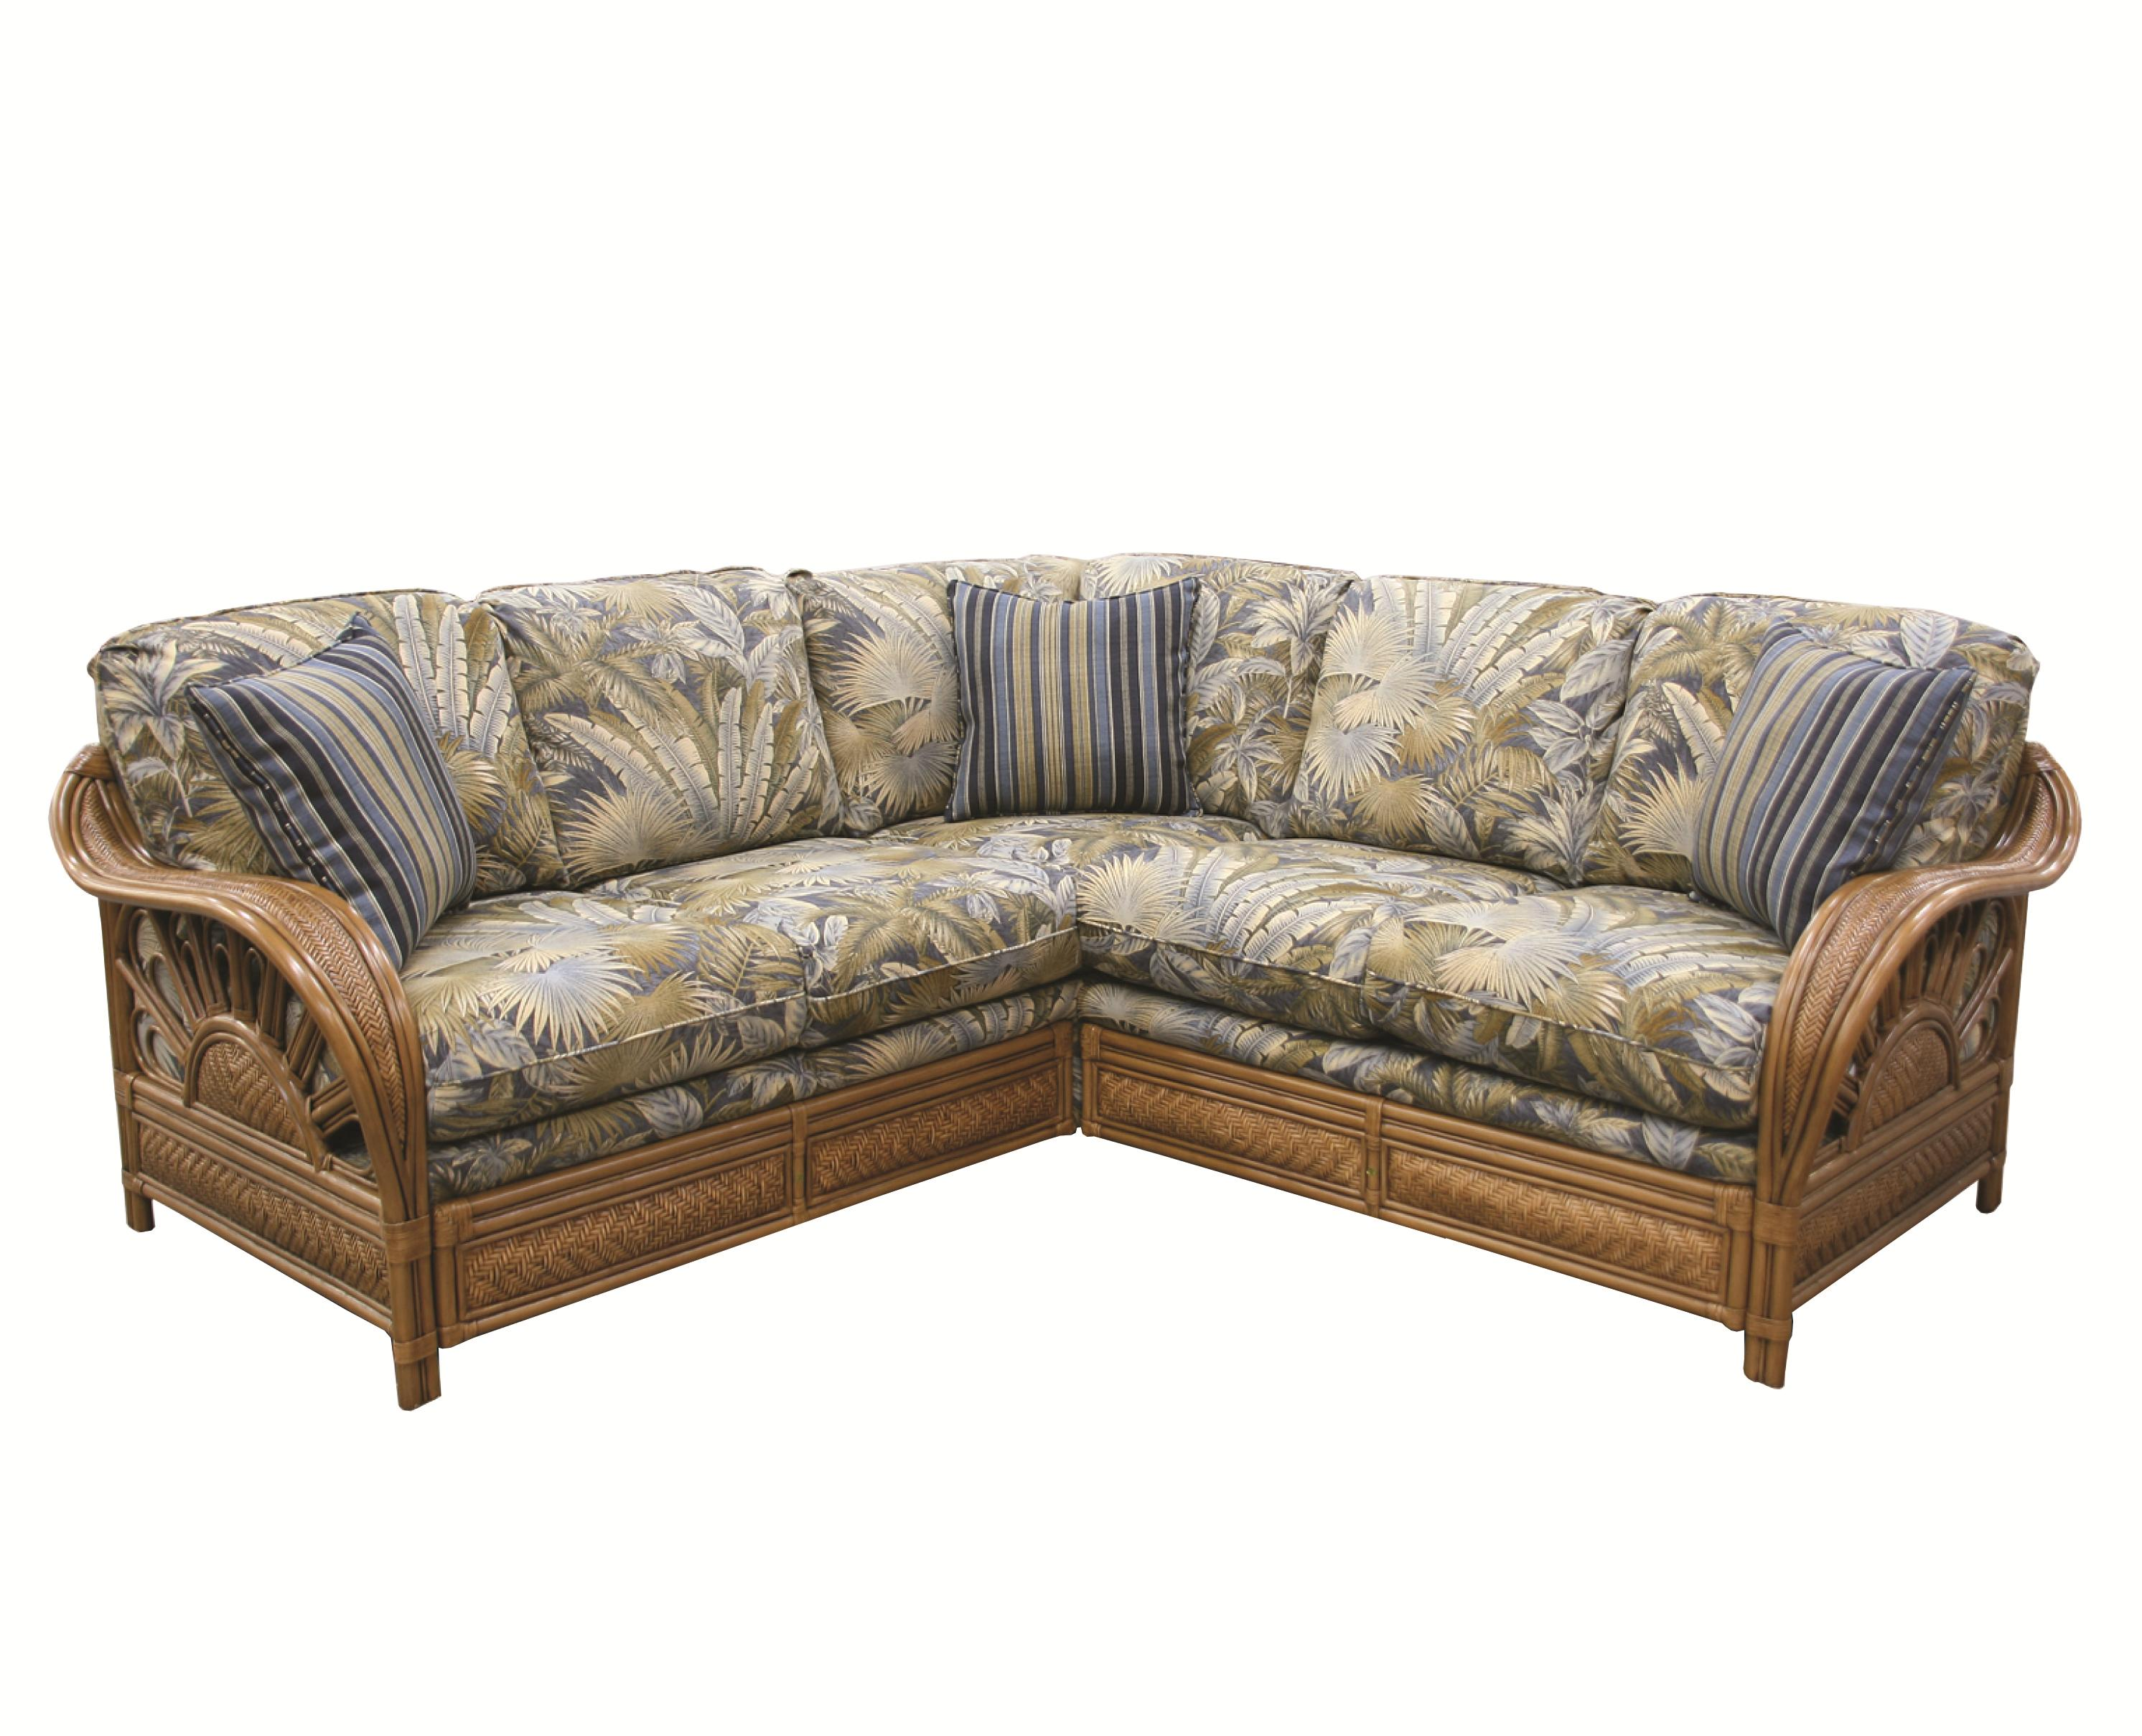 321 Collection Wicker Rattan Sectional by Capris Furniture at Esprit Decor Home Furnishings